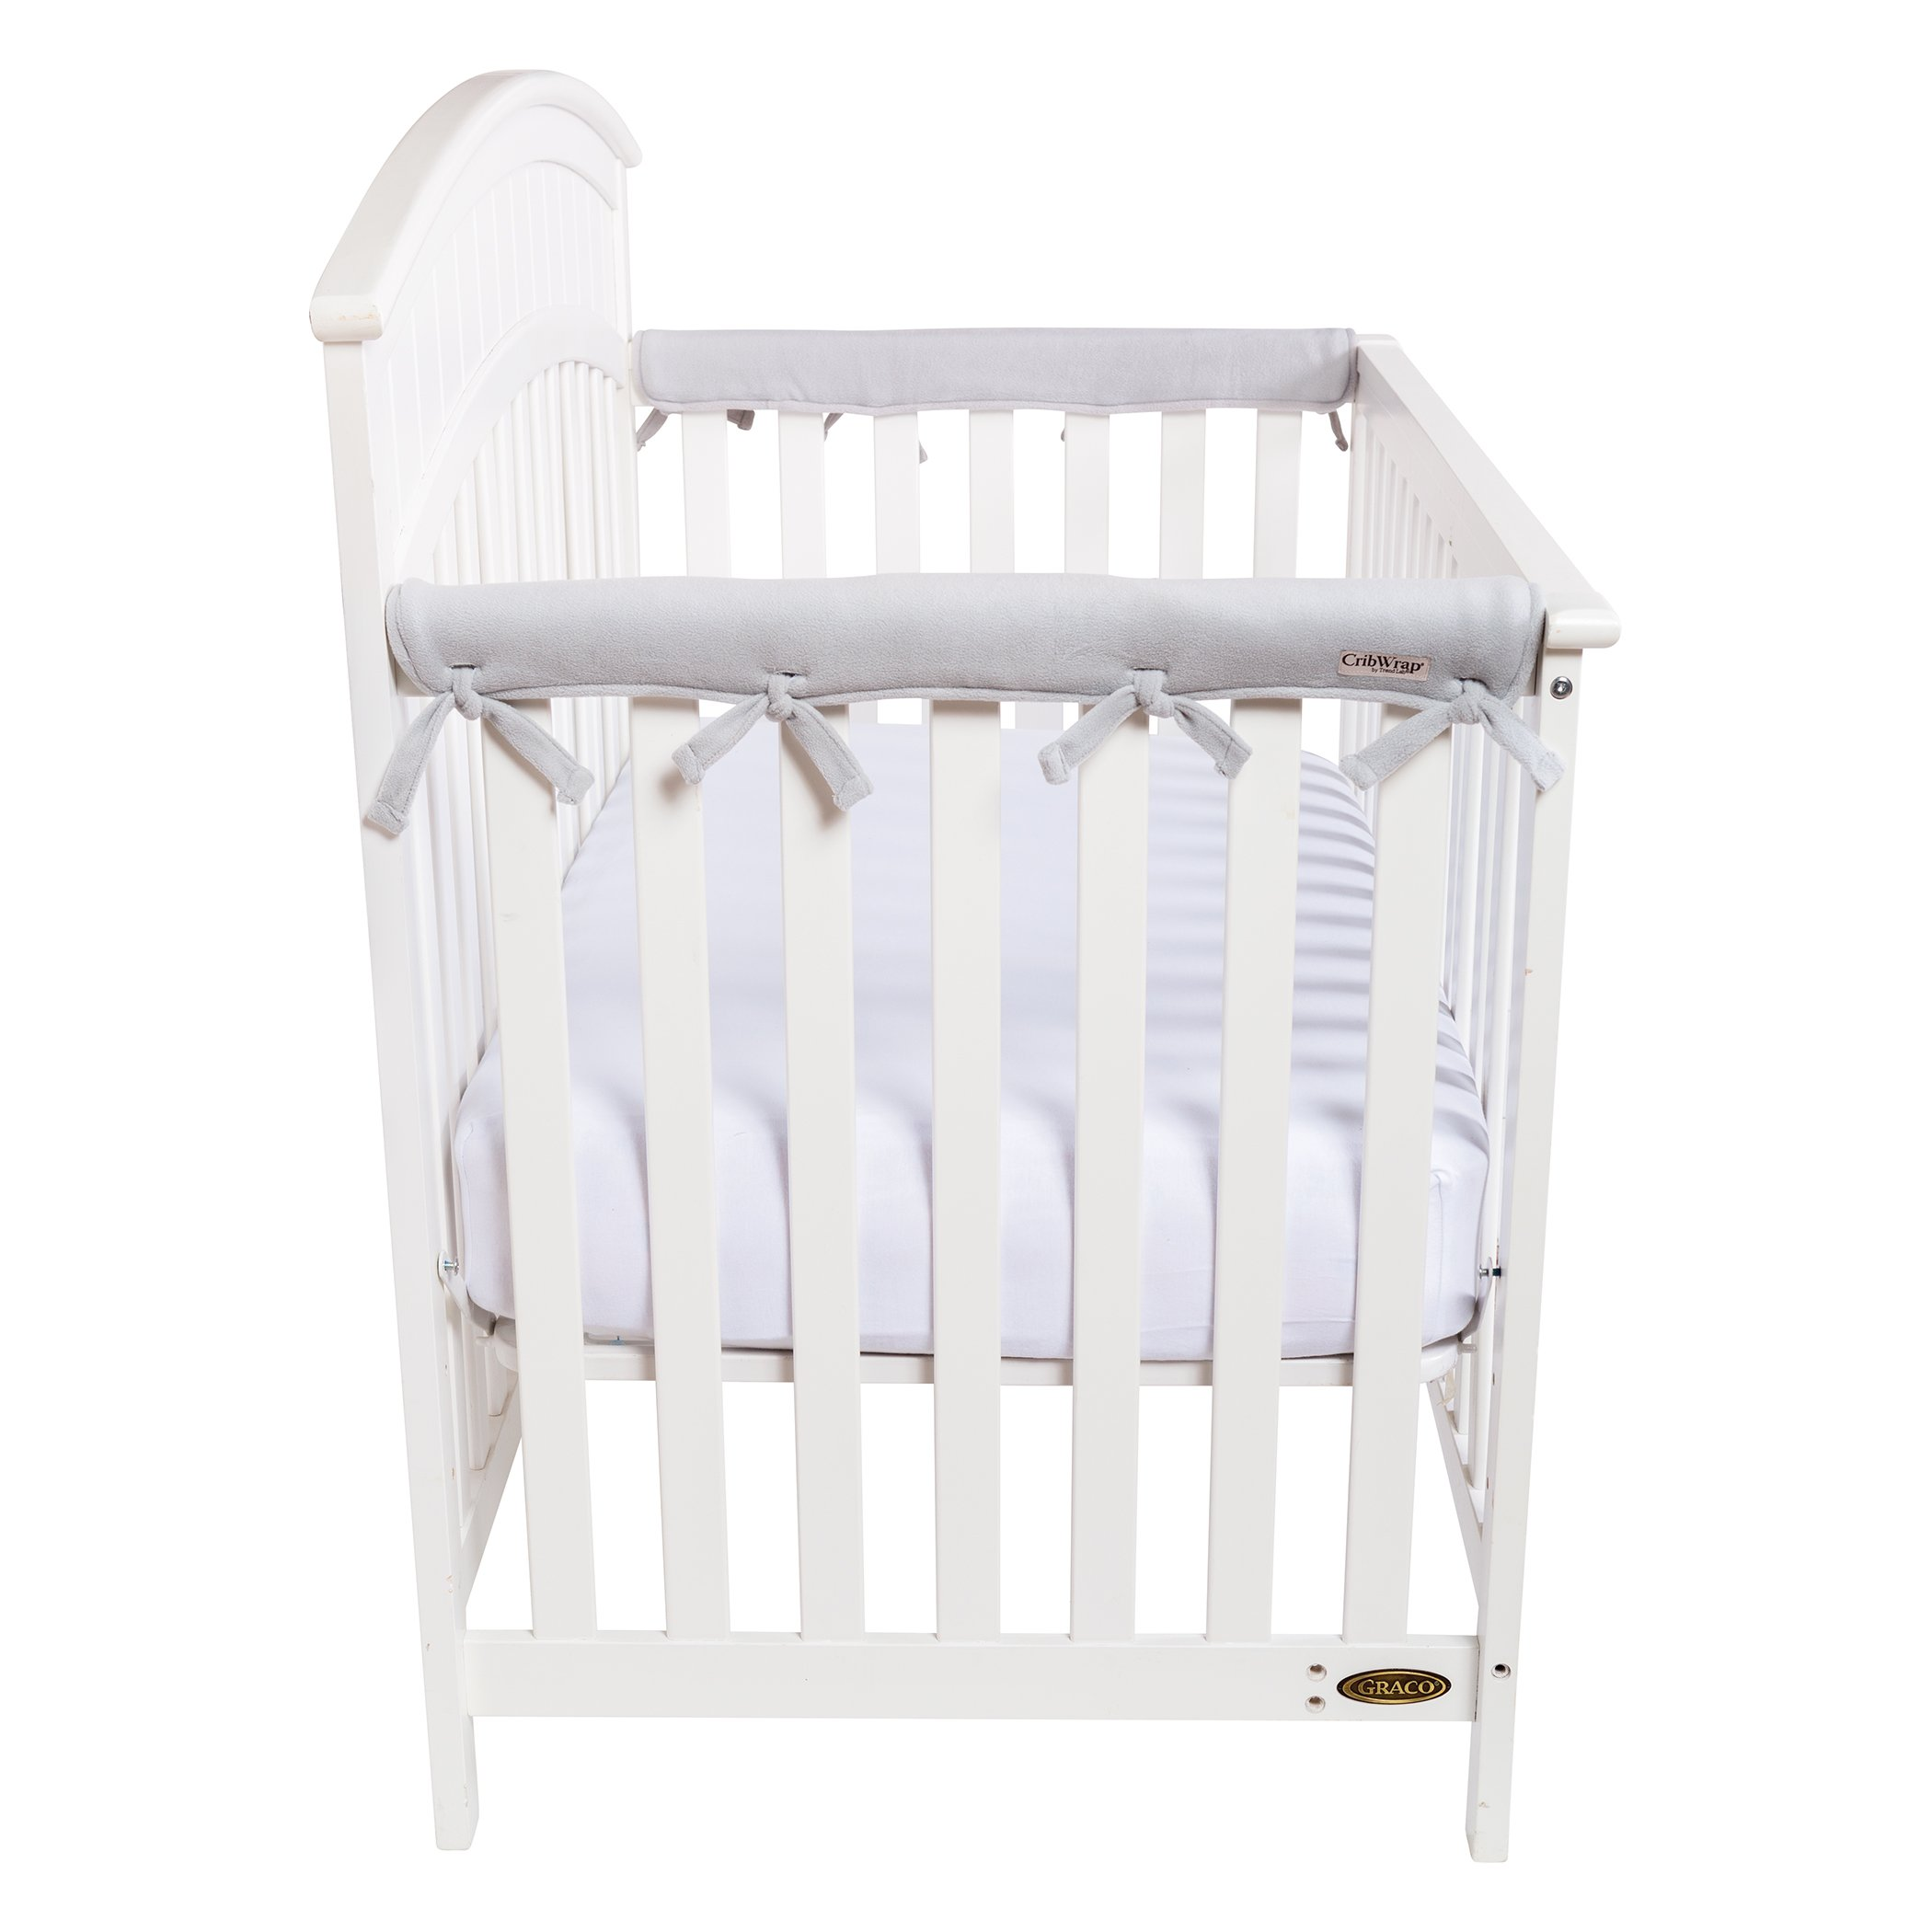 Trend Lab Waterproof CribWrap Rail Cover - For Narrow Side Crib Rails Made to Fit Rails up to 8'' Around. Pack of 2!